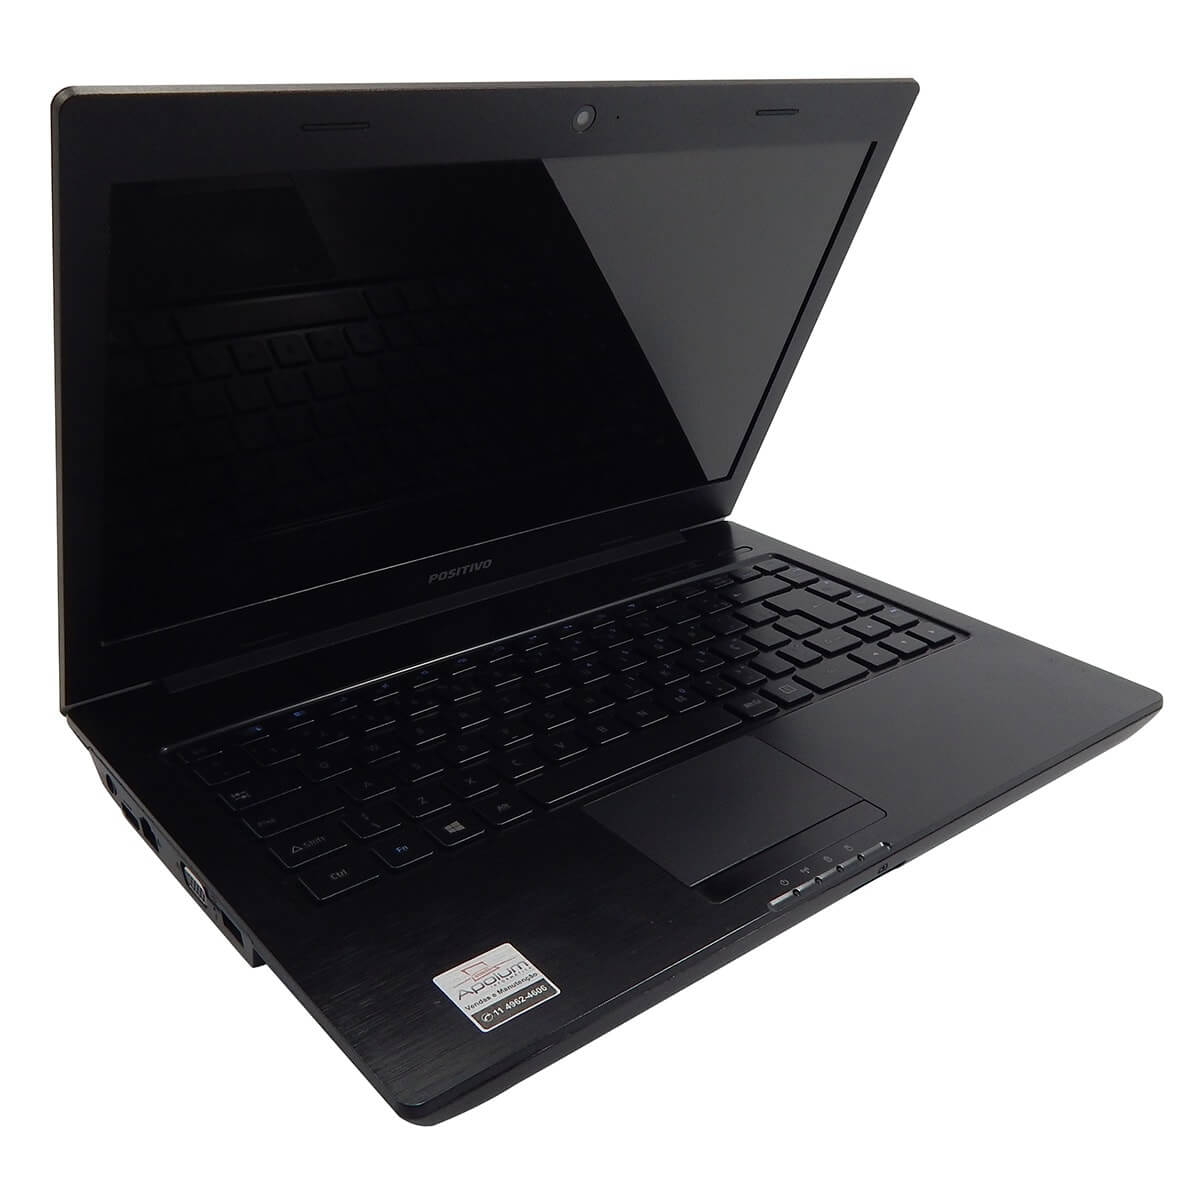 NOTEBOOK POSITIVO SIM 3060m I3-3110M 6Gb 500Gb HD - Seminovo